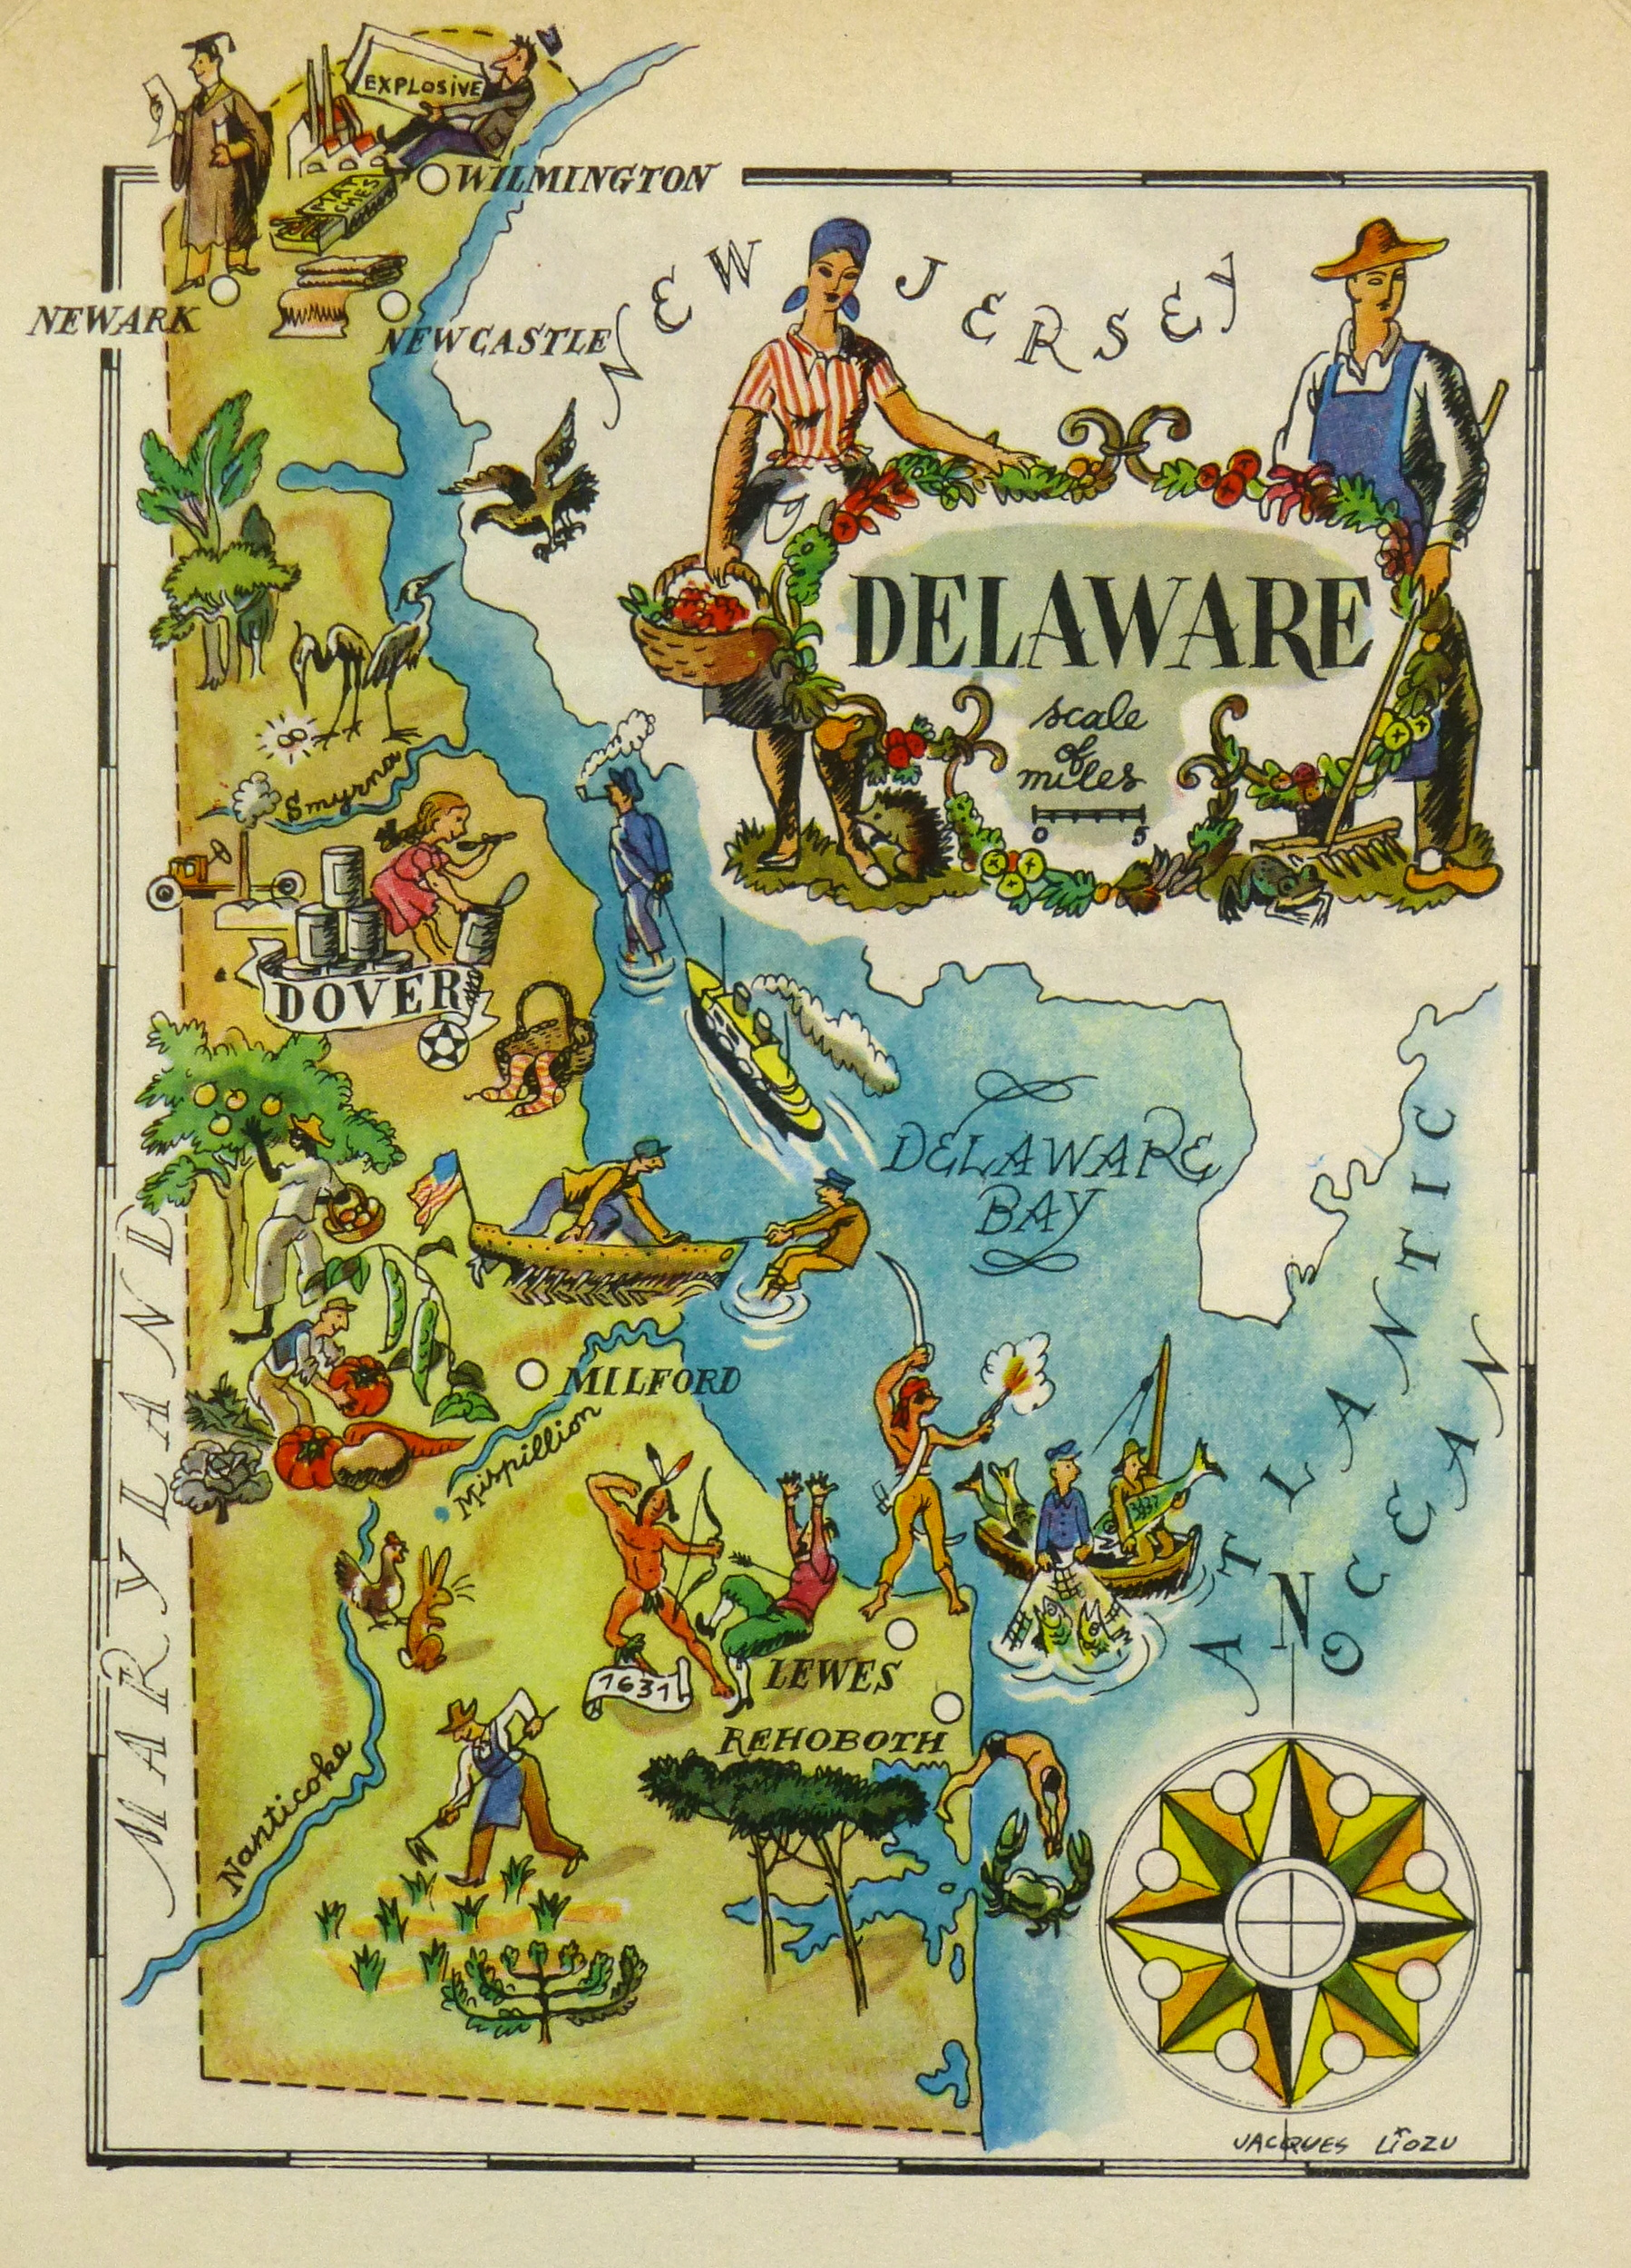 Delaware Pictorial Map, 1946